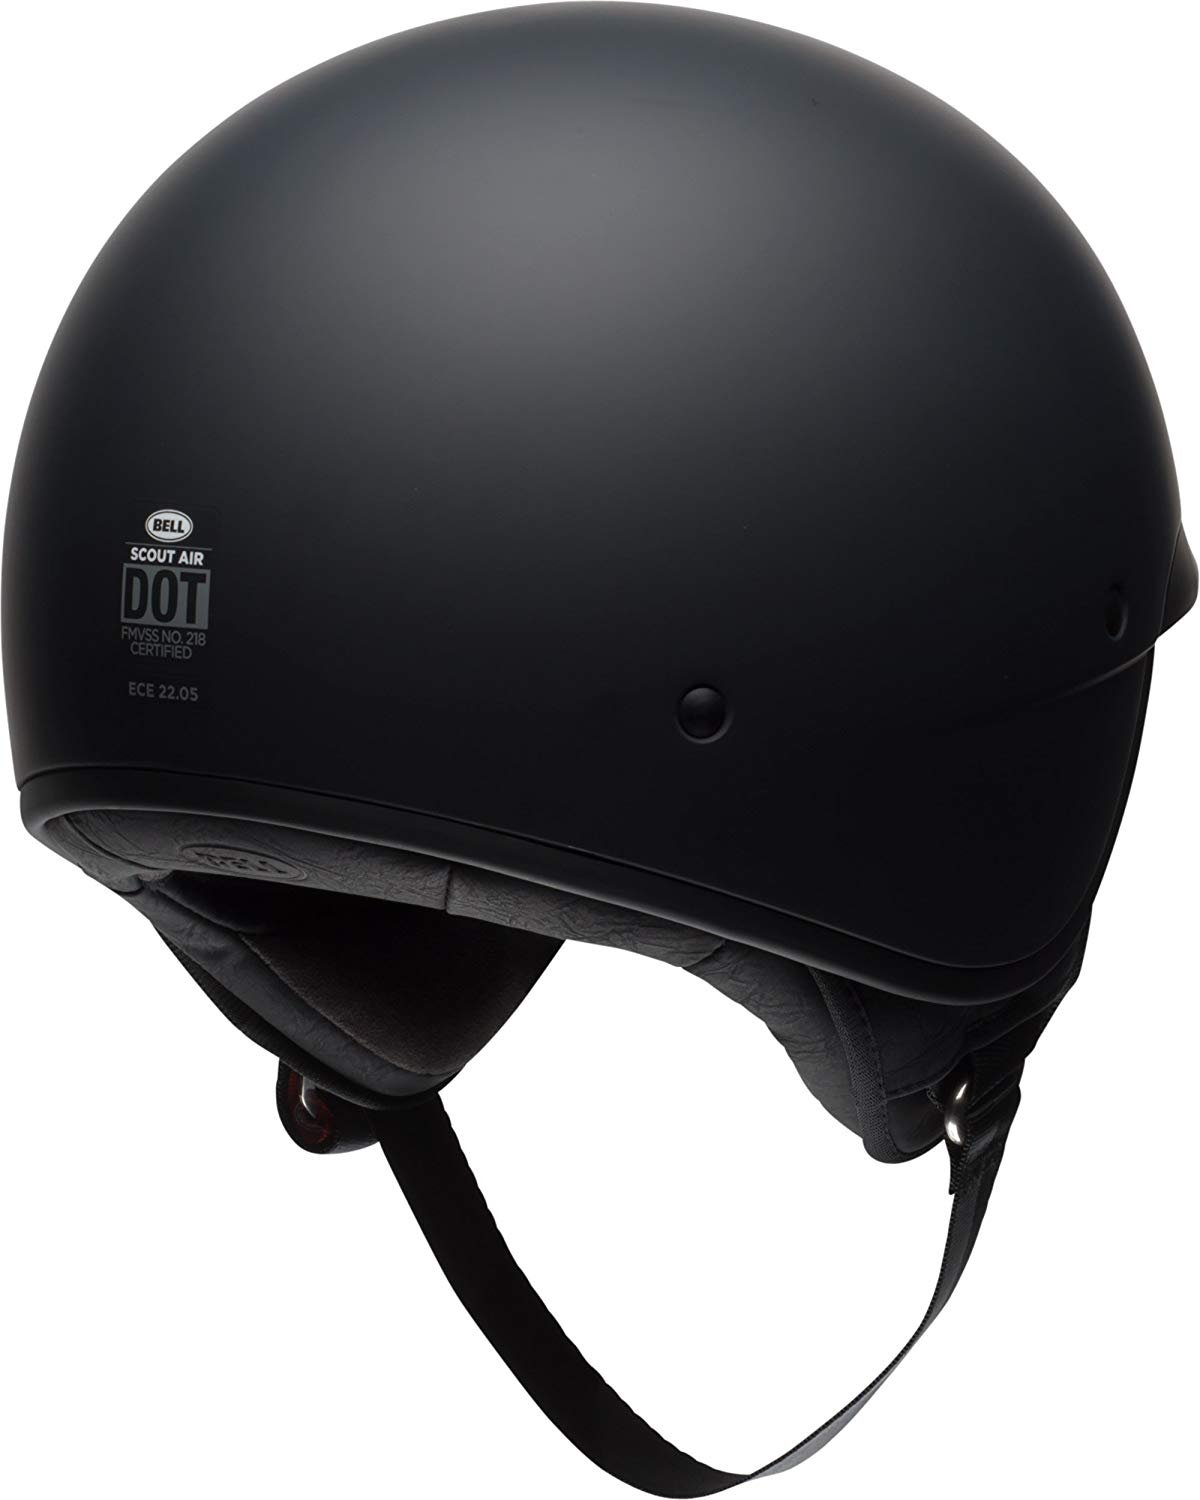 Bell Scout Air Motorcycle Helmet Solid Matte Black, Large